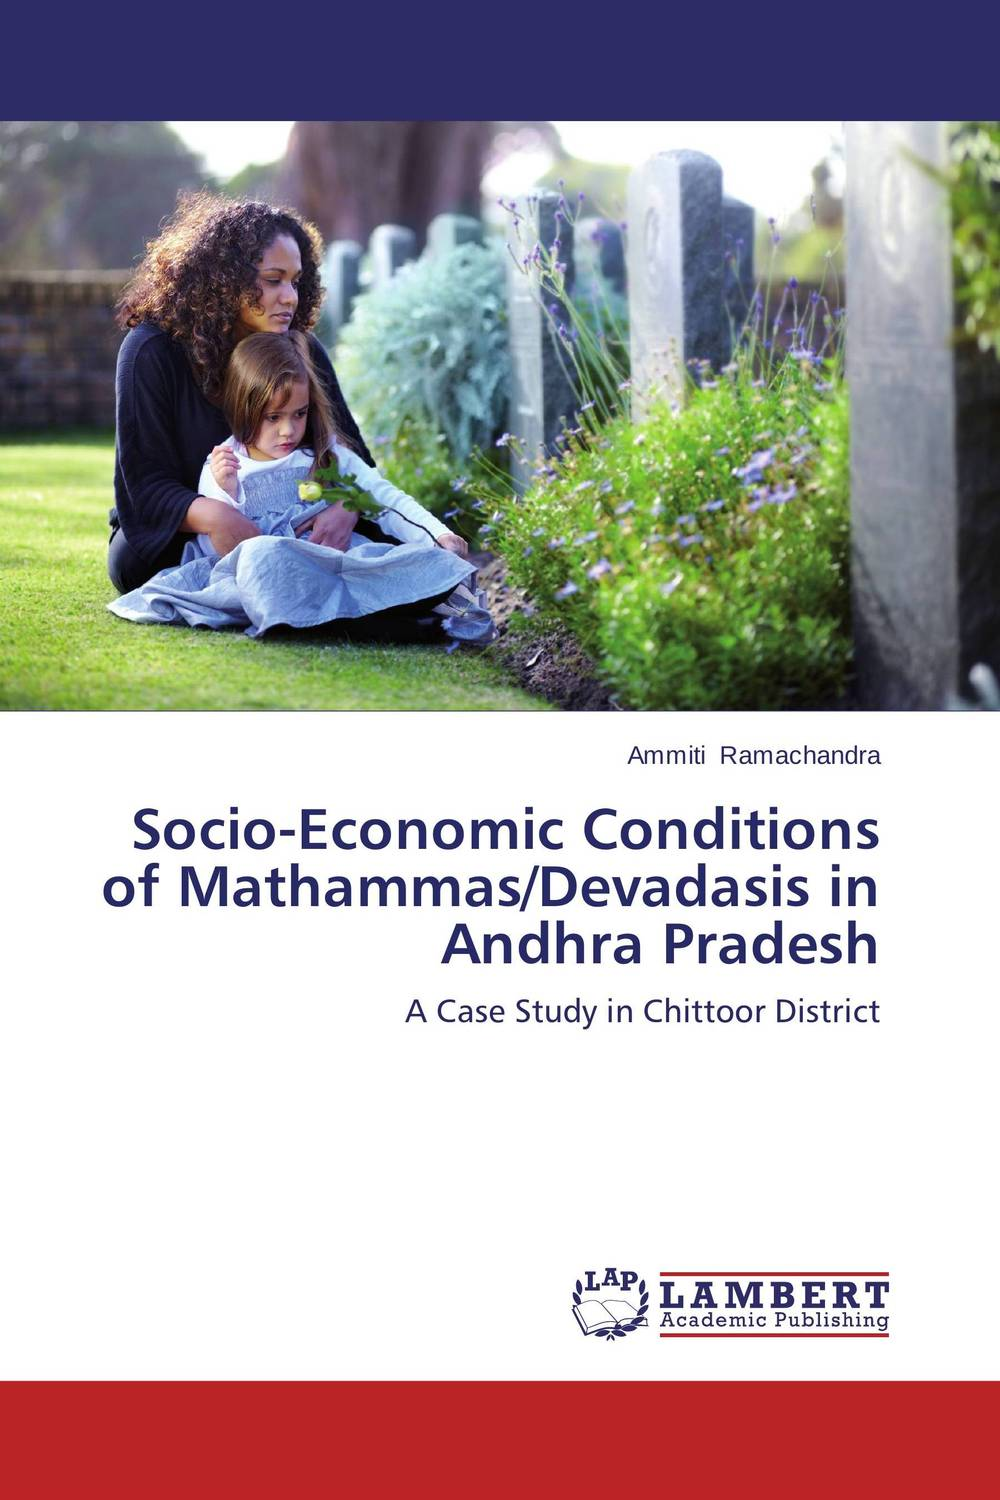 Socio-Economic Conditions of Mathammas/Devadasis in Andhra Pradesh socio economic conditions and gender gap in schools